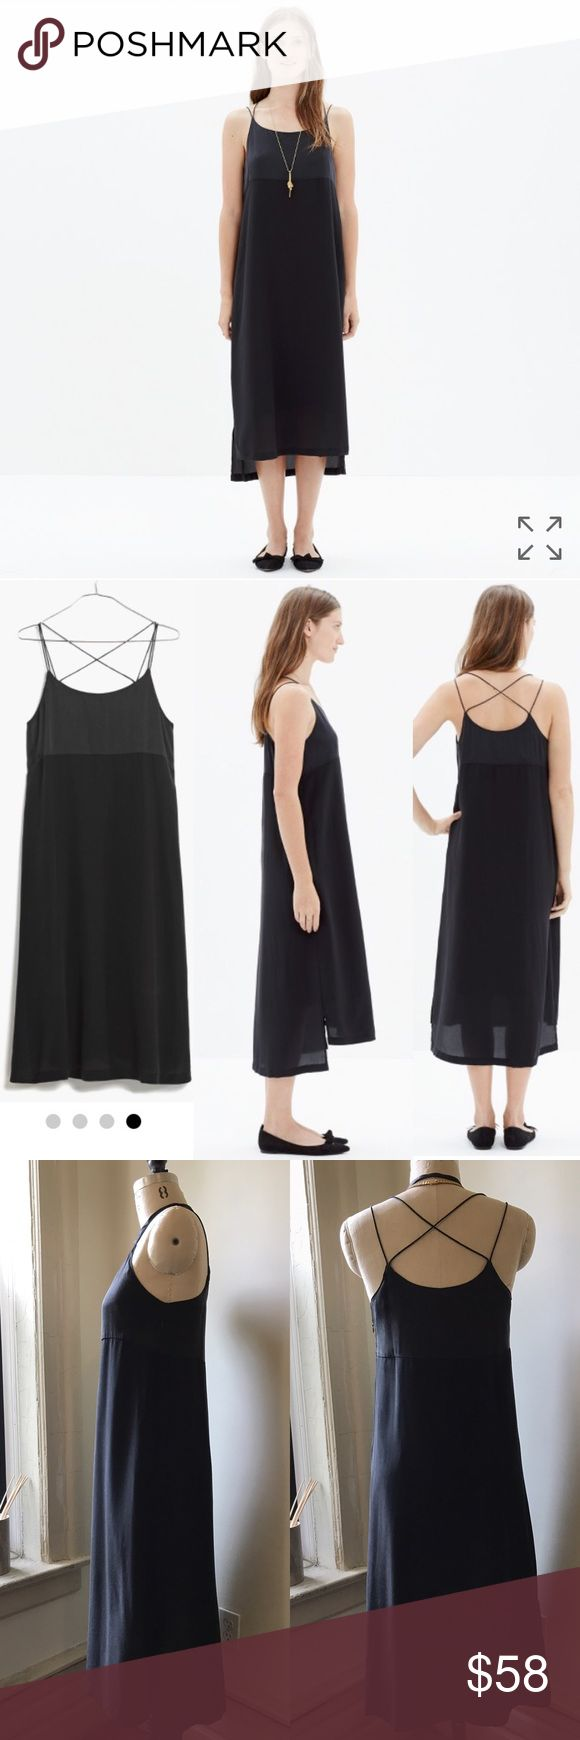 """Madewell Silk Magic Hour Dress Beautiful silk dress that can easily be dressed up or down. Size says size 2, but I'm more of a 4 to 6 and fit it well. For a size 4-6 person; it's more fitted than the model, more like the dressform fit. The top is fully lined in silk and the skirt has a poly lining.  Only worn once. The charmeuse top has a washed silk look (but does not look """"worn"""" at all) and is a nice contrast to the matte crepe skirt portion. Please ask any questions and make offers with…"""